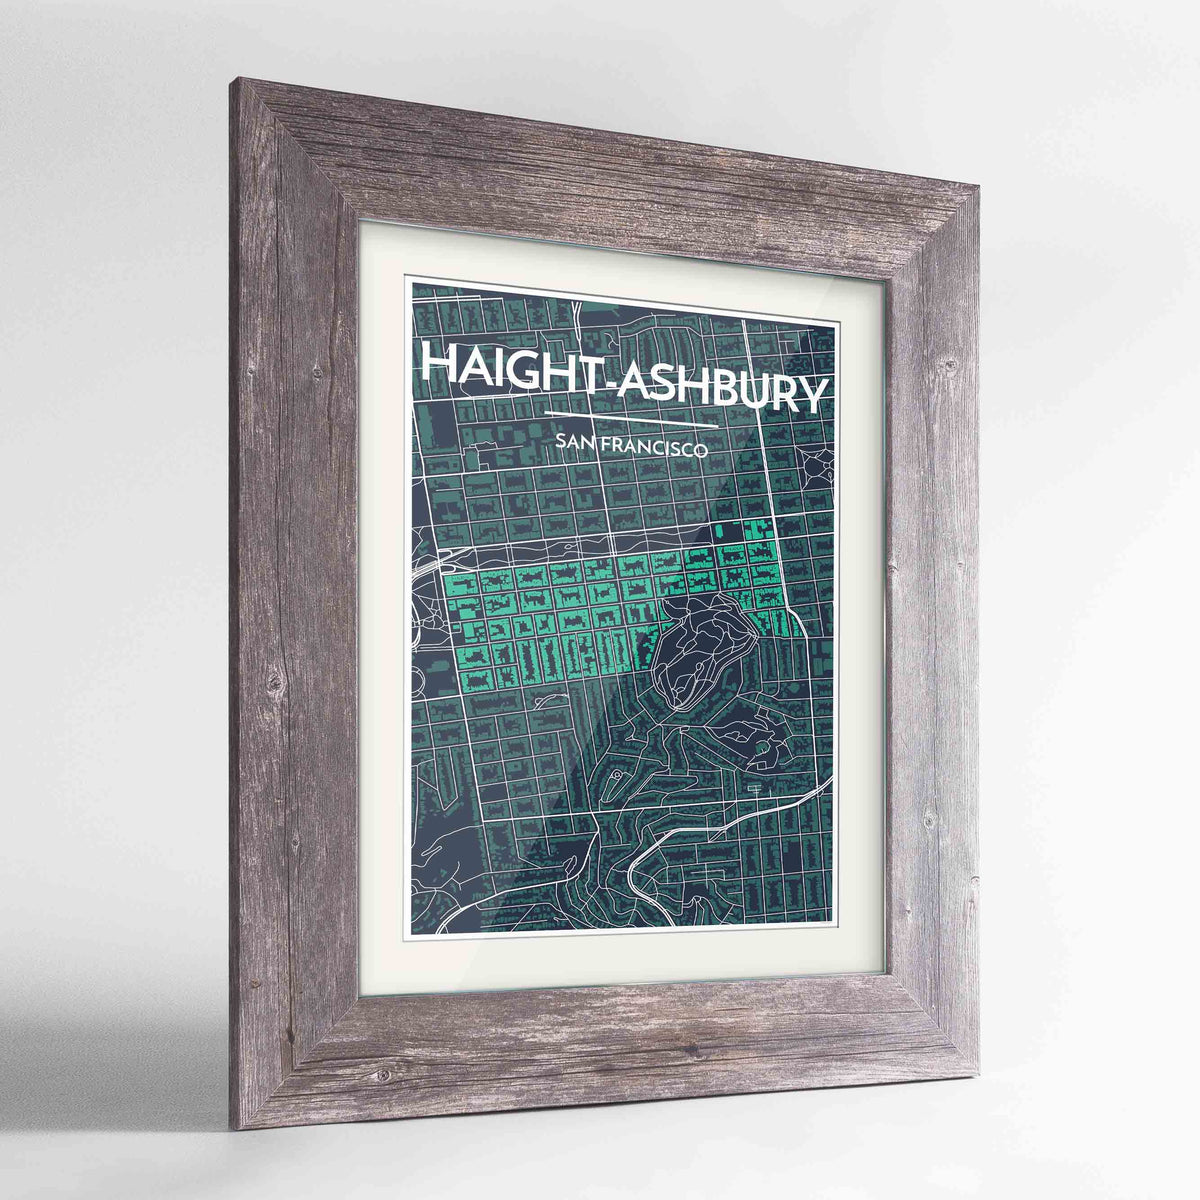 "Framed Haight-Ashbury San Francisco Map Art Print 24x36"" Western Grey frame Point Two Design Group"